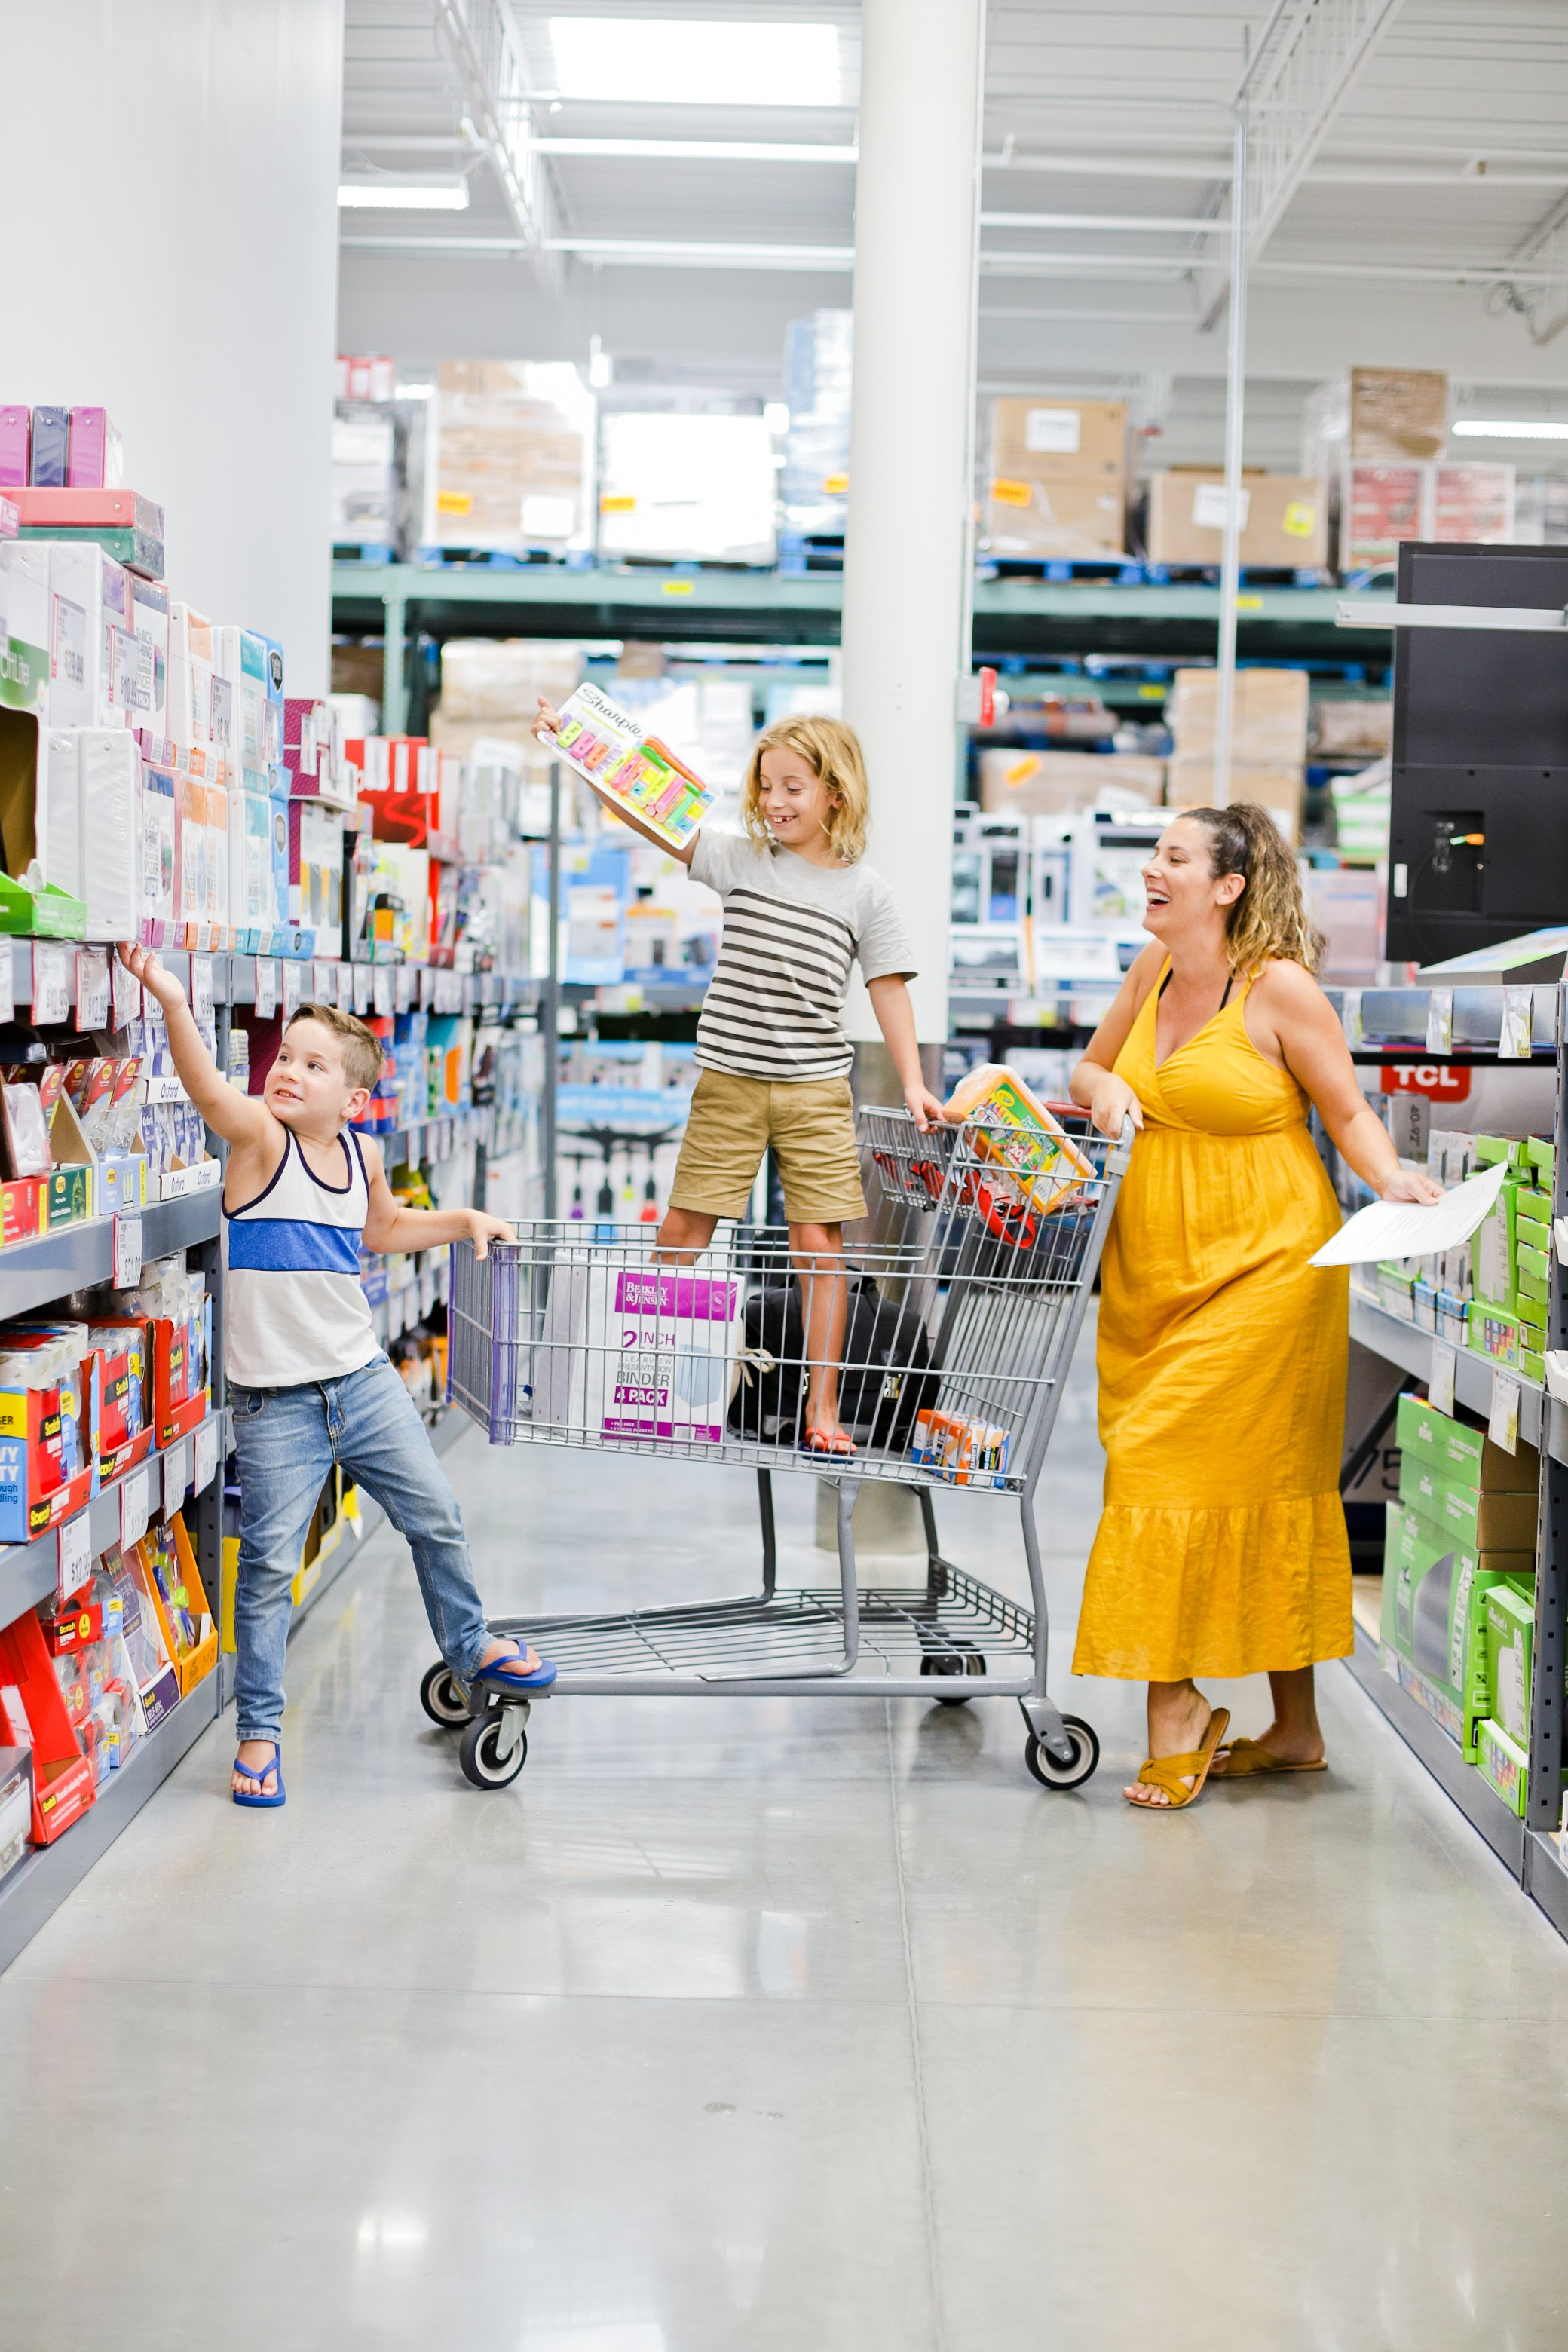 5 Sensational Strategies to Make Getting Ready for School Easy | How to Get Ready for School: 5 Sensational Strategies to Make Easy on your Family by popular Tampa life and style blog, Fresh Mommy: image of a woman standing in a school supply aisle at a store with her two young sons.